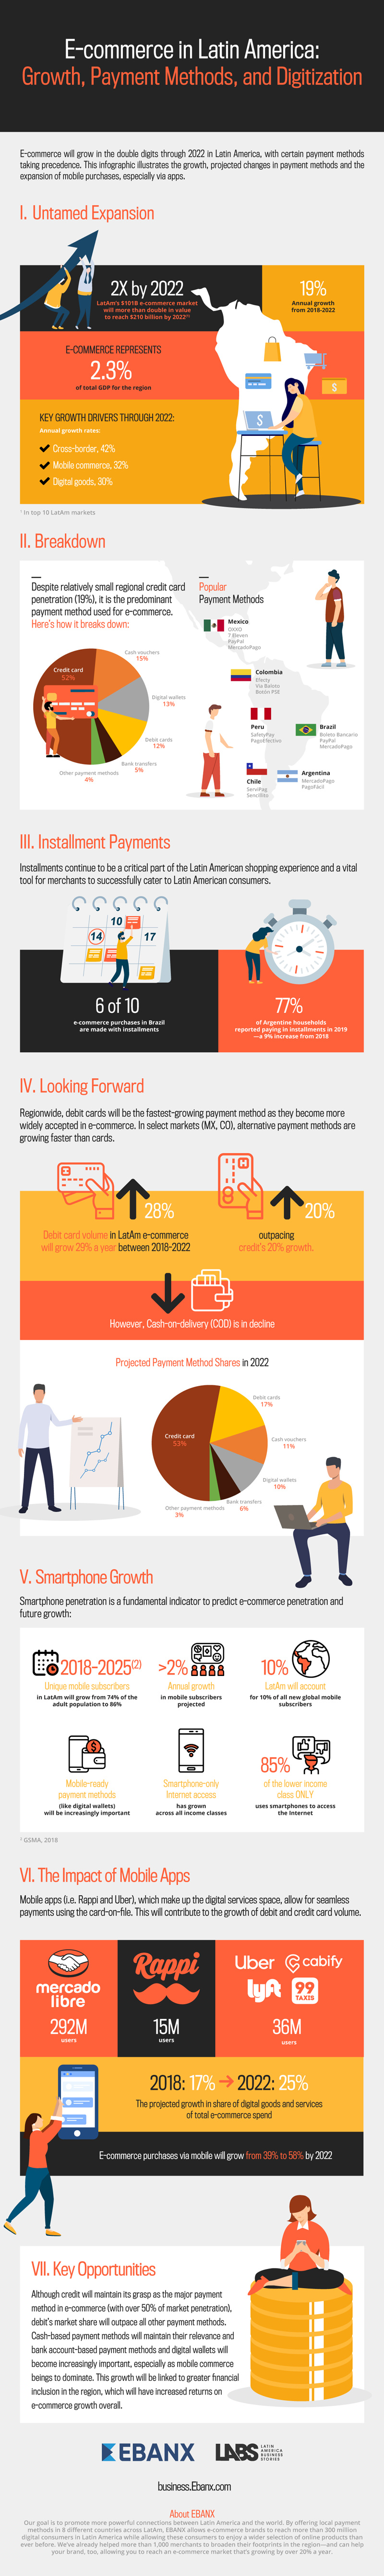 Infographic E-commerce Payment Methods in LatAm